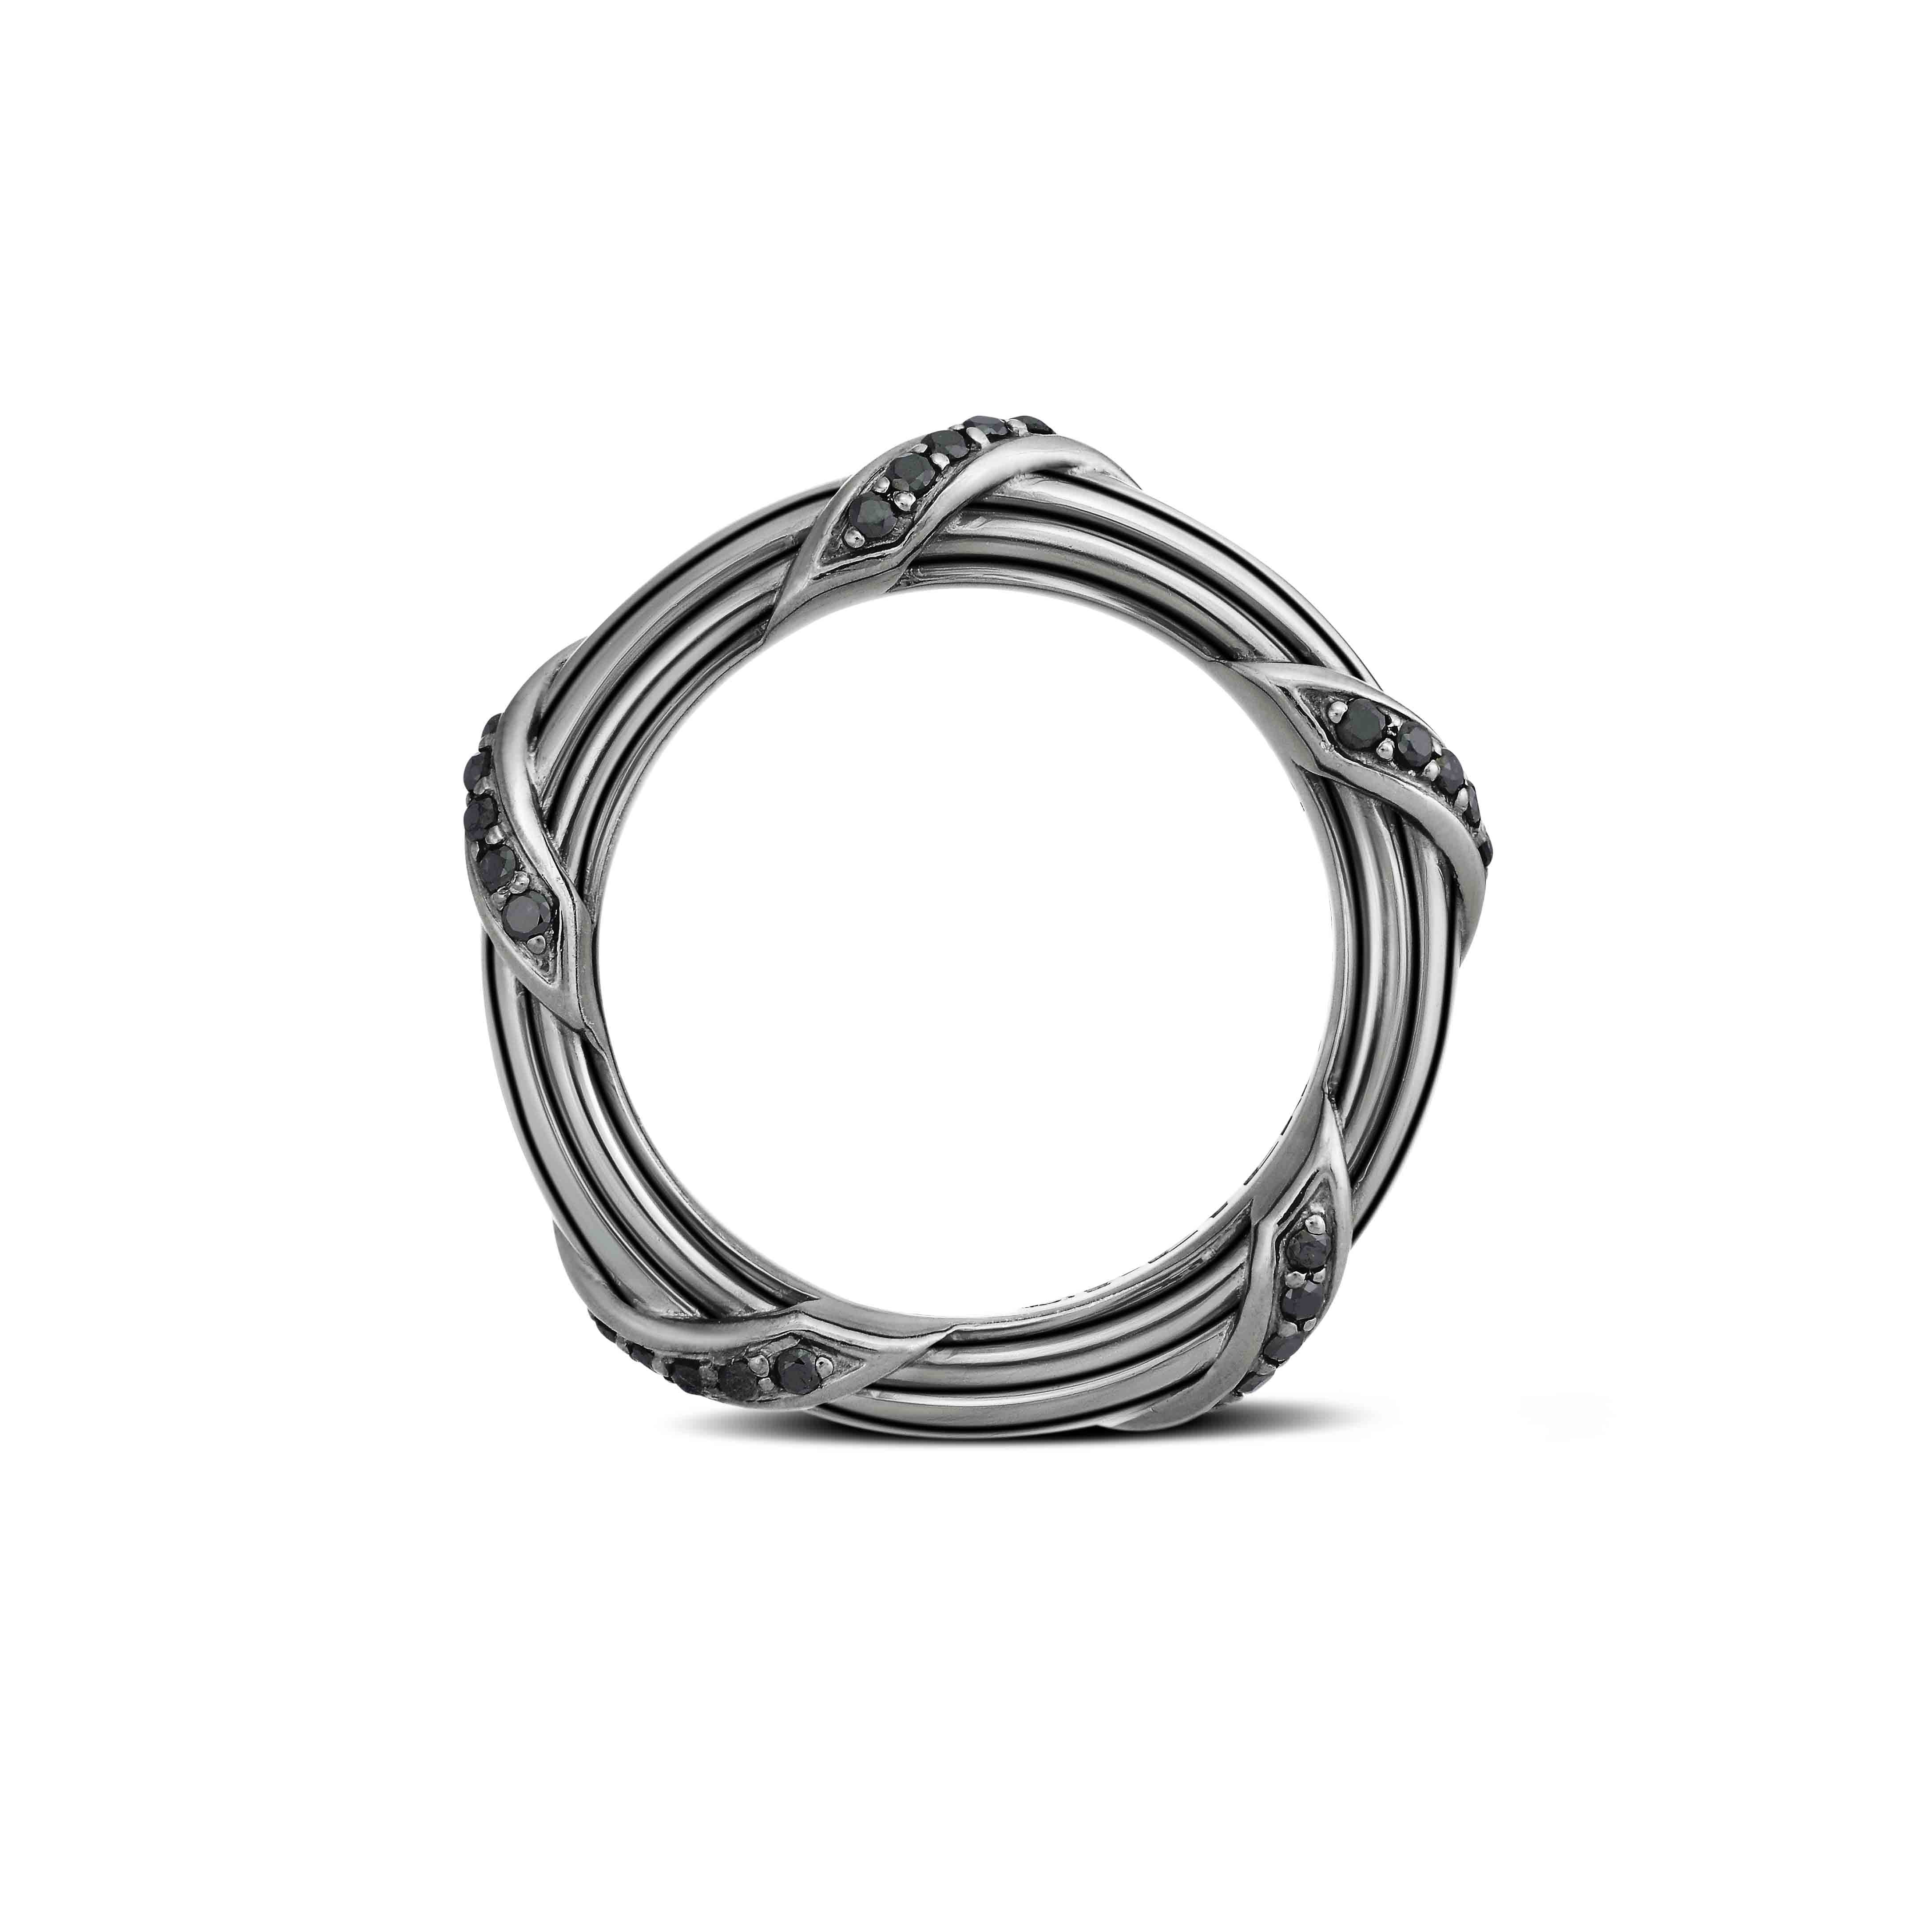 Signature Diamond Band Ring in ruthenium sterling silver 4 mm